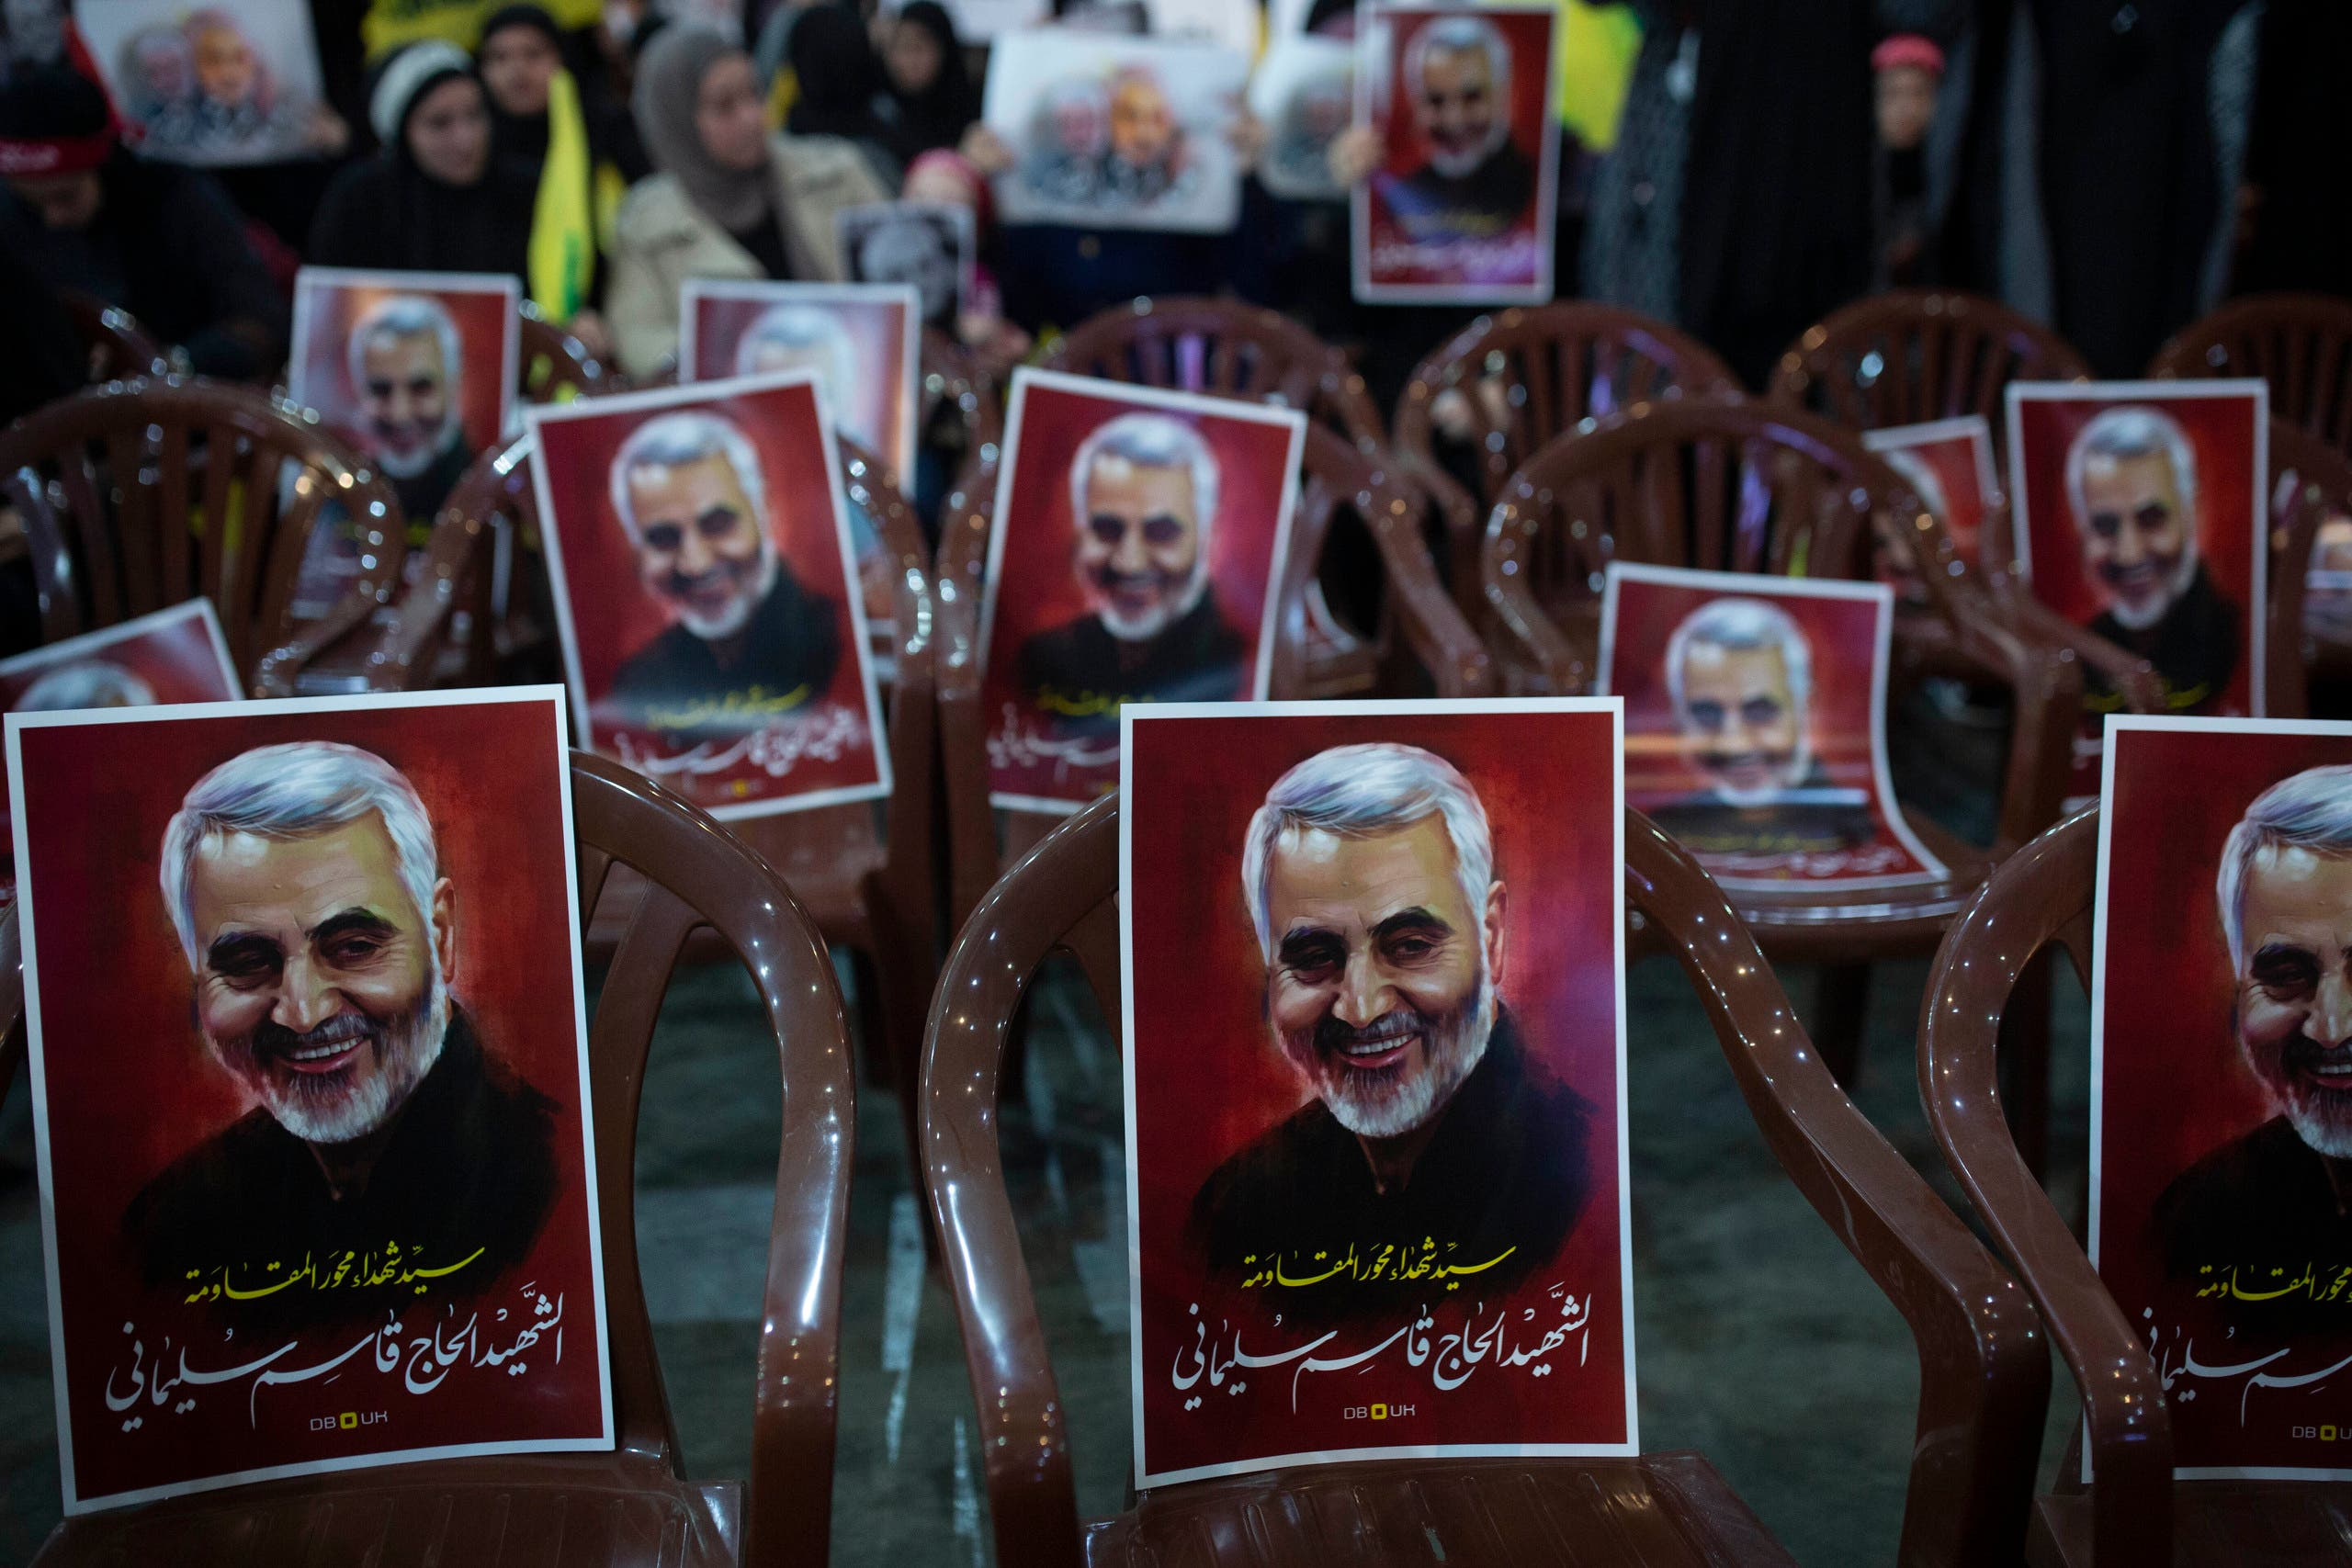 Posters of slain Iranian Revolutionary Guard Gen. Qassem Soleimani are placed on chairs as supporters of Hezbollah leader Sayyed Hassan Nasrallah gather for his televised speech in a southern suburb of Beirut, Lebanon, Sunday, Jan. 5, 2020. (File photo: AP)